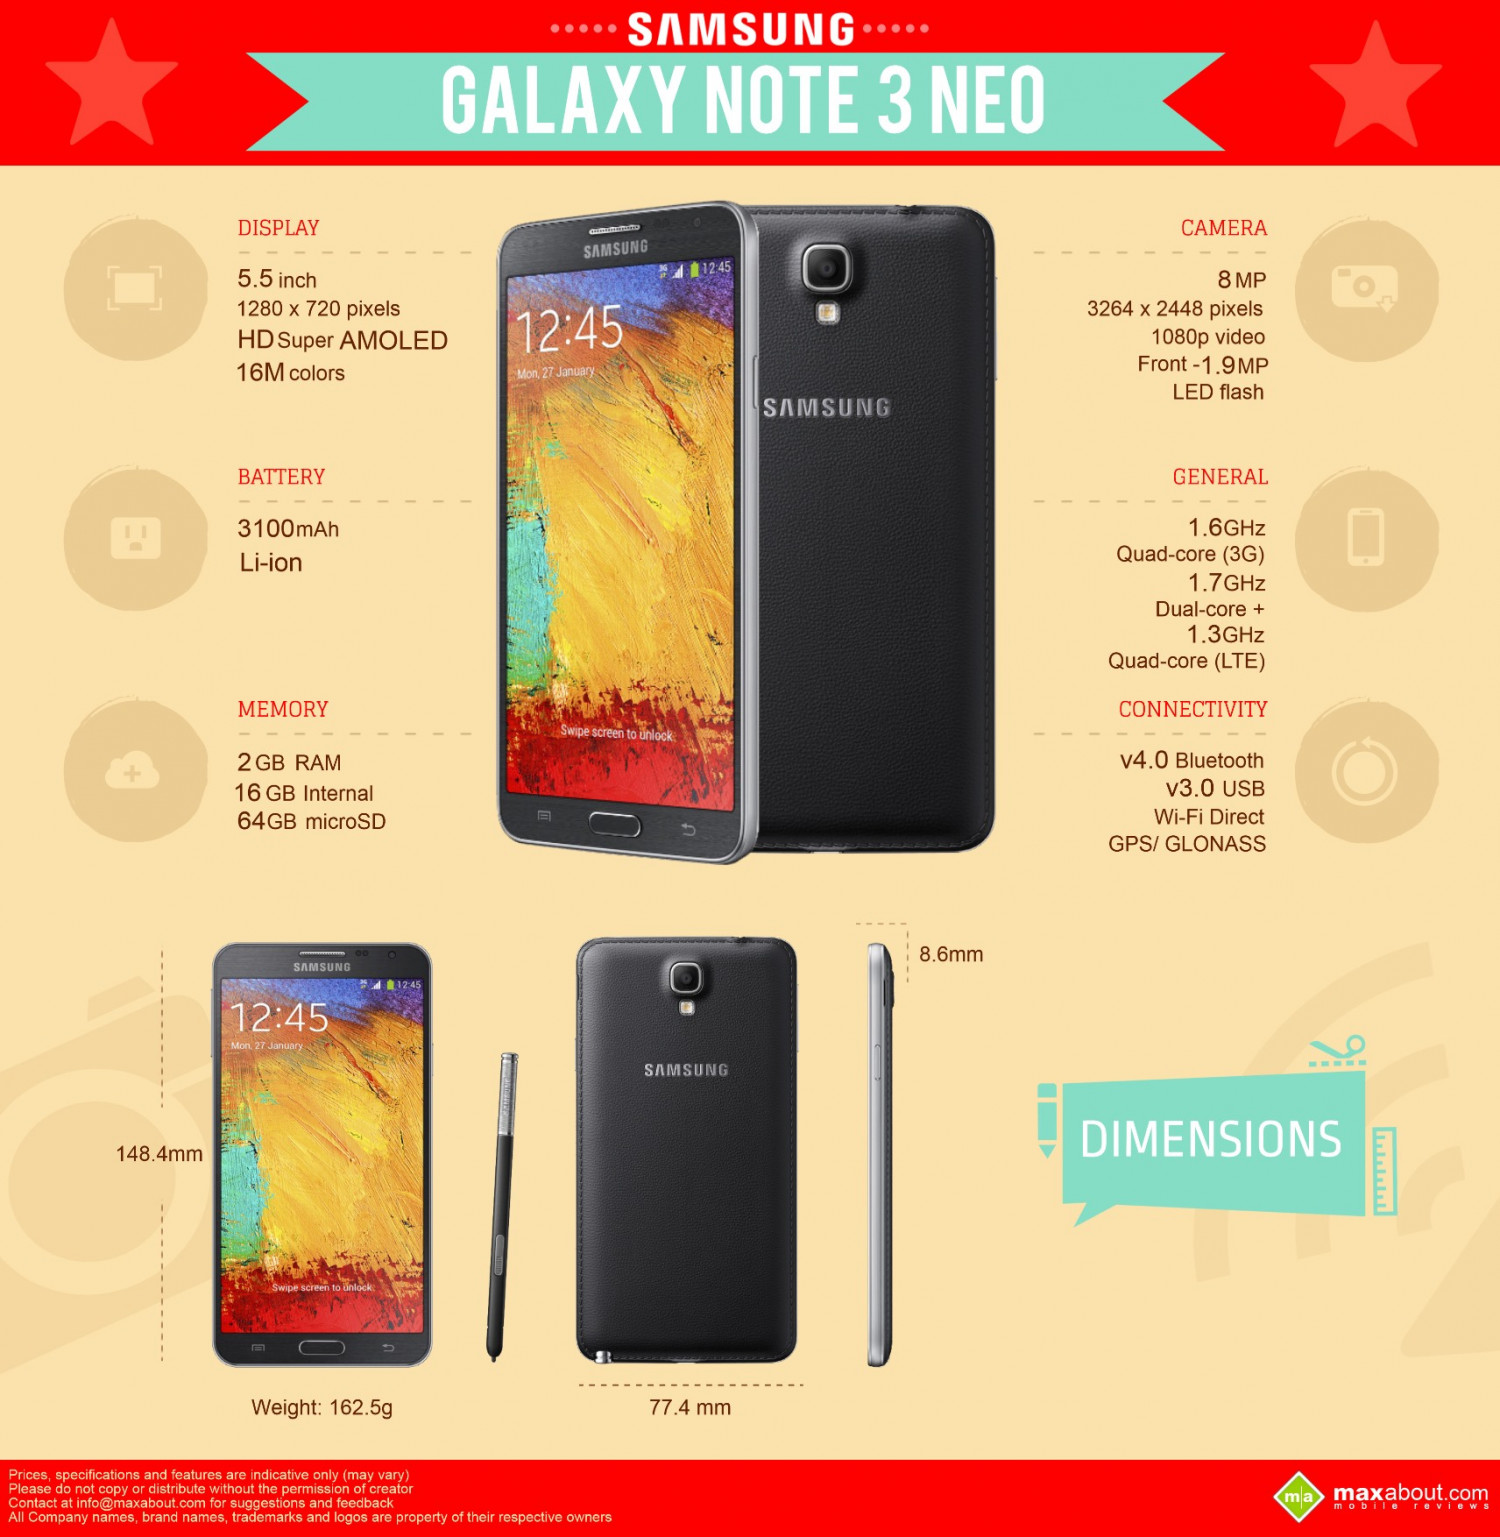 Samsung Galaxy Note 3 Neo Infographic